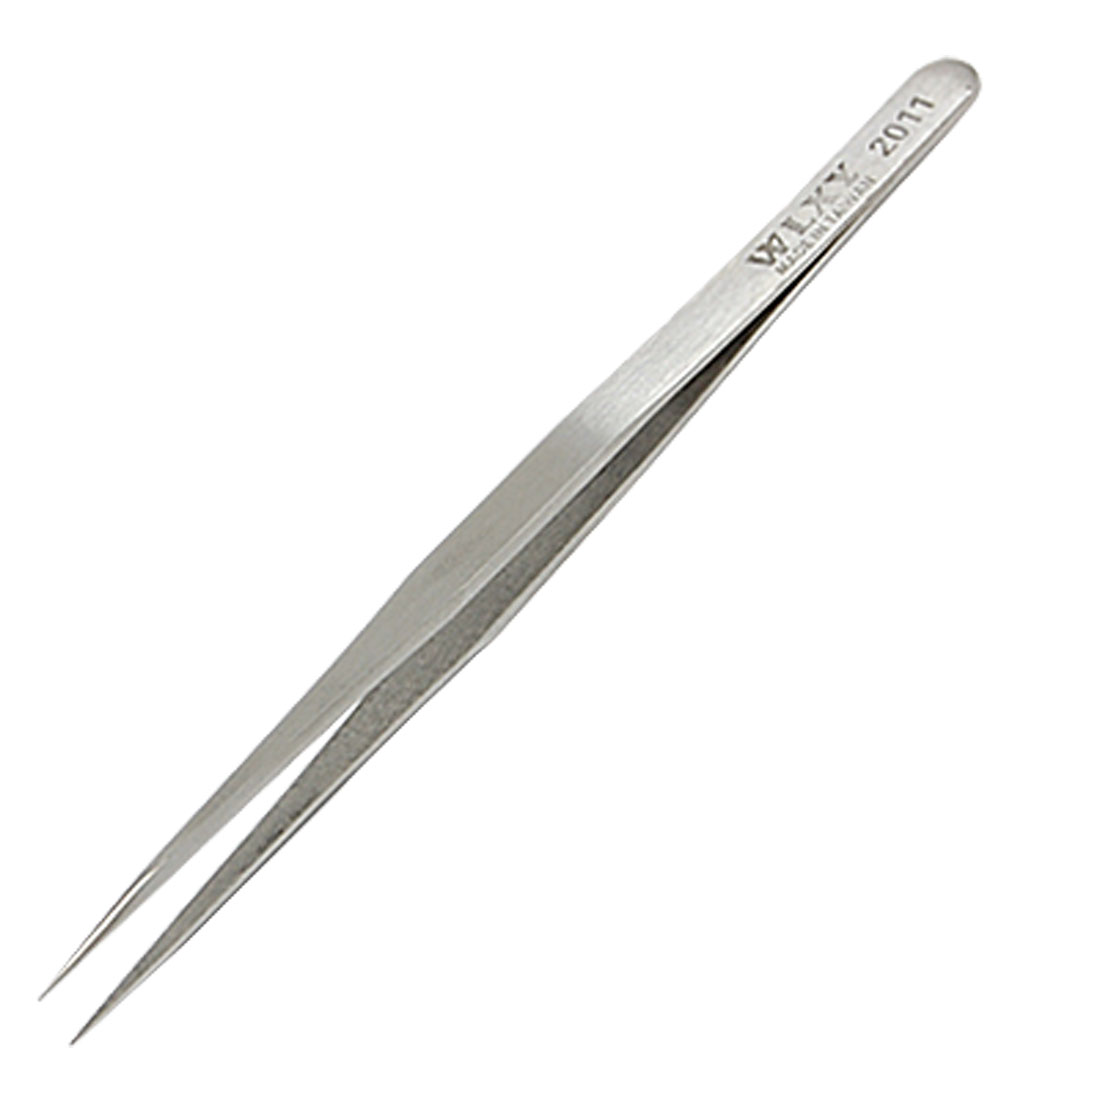 2011 Slim Pointy Straight Extra Fine Point Tweezers Plier